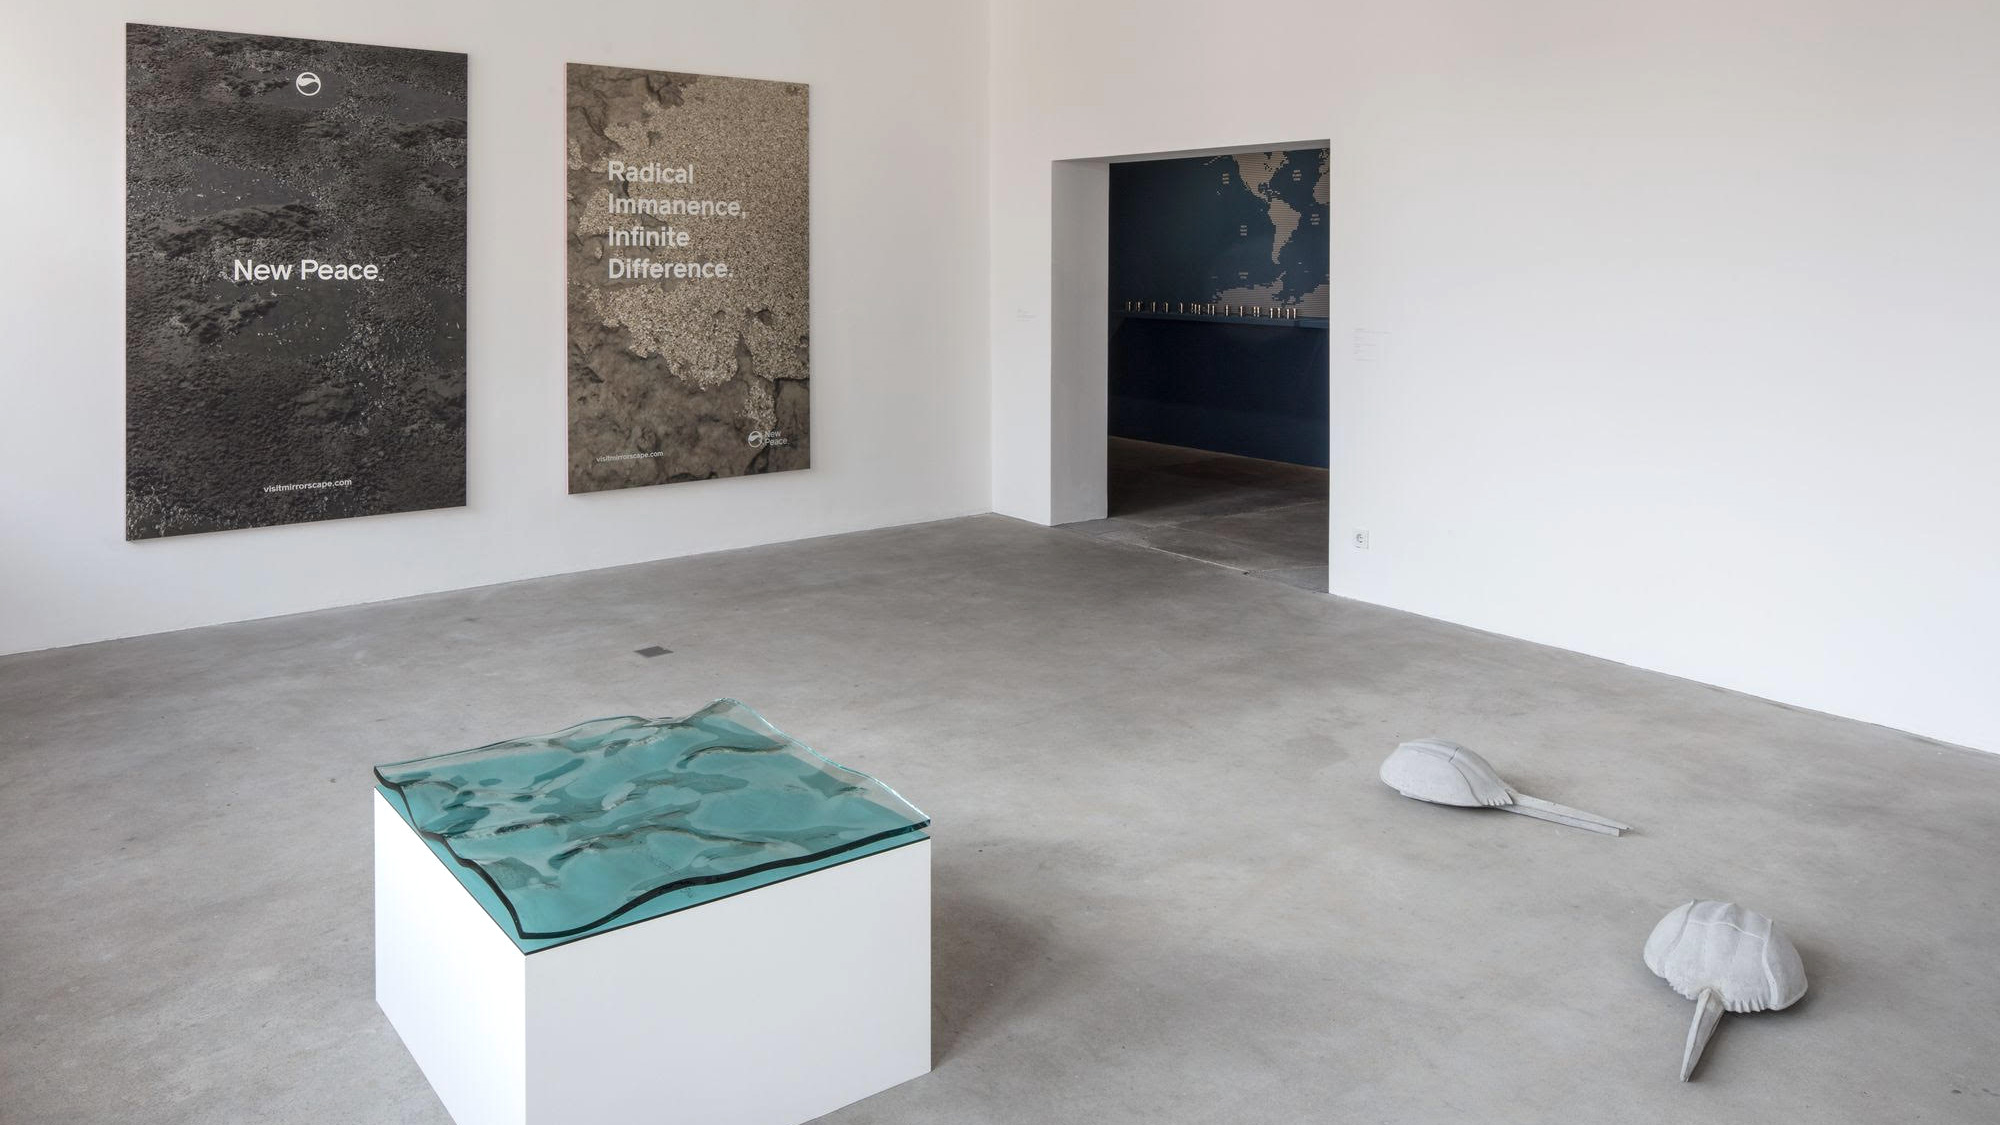 Installation view: Tue Greenfort, Seascape I, 2017, Glas / glass und Detail / and detail: Horseshoe Crab #02 – #06, 2017, Beton / concrete; Timur Si-Qin, Untitled (Sacred Matter Panel 1), 2017, Inkjet print on aluminium sandwich panel. Courtesy the artist and Société.